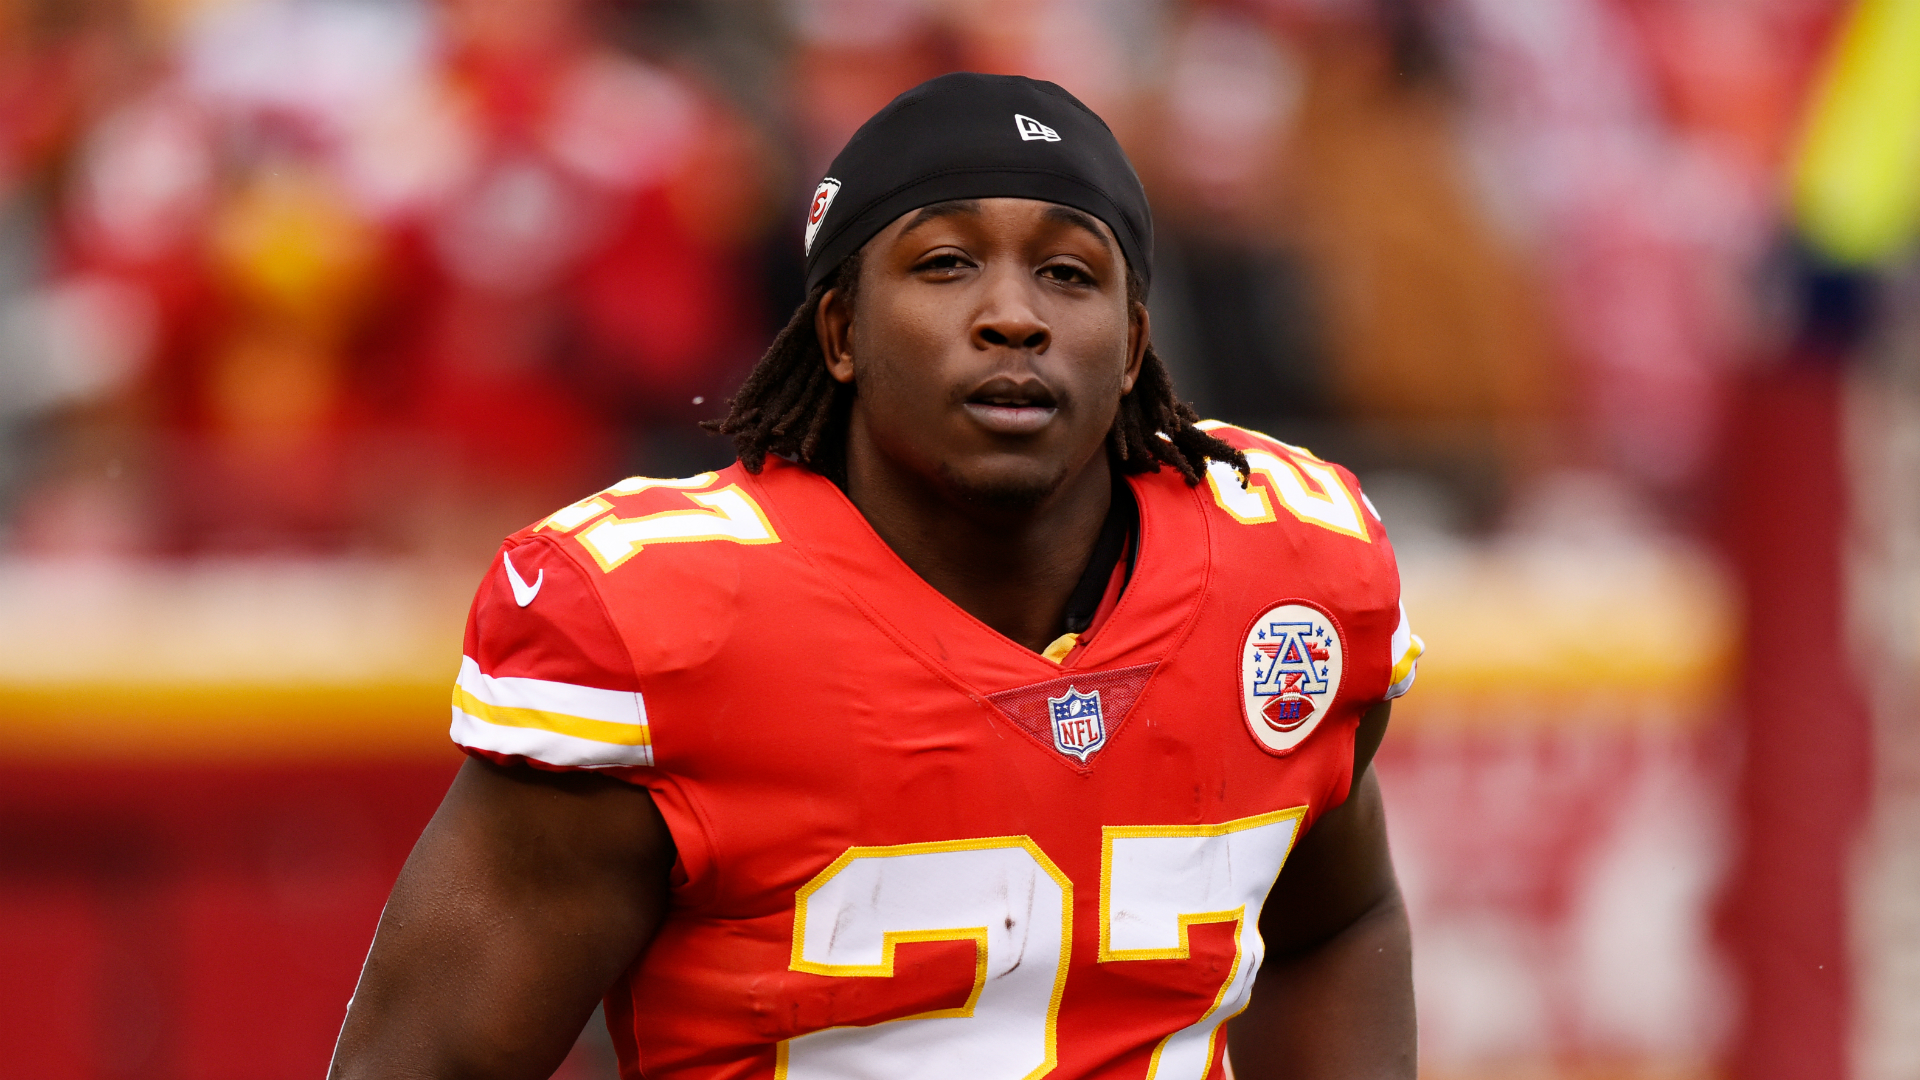 kareem-hunt-video-nfl-investigation-into-assault-still-impacts-browns-rb